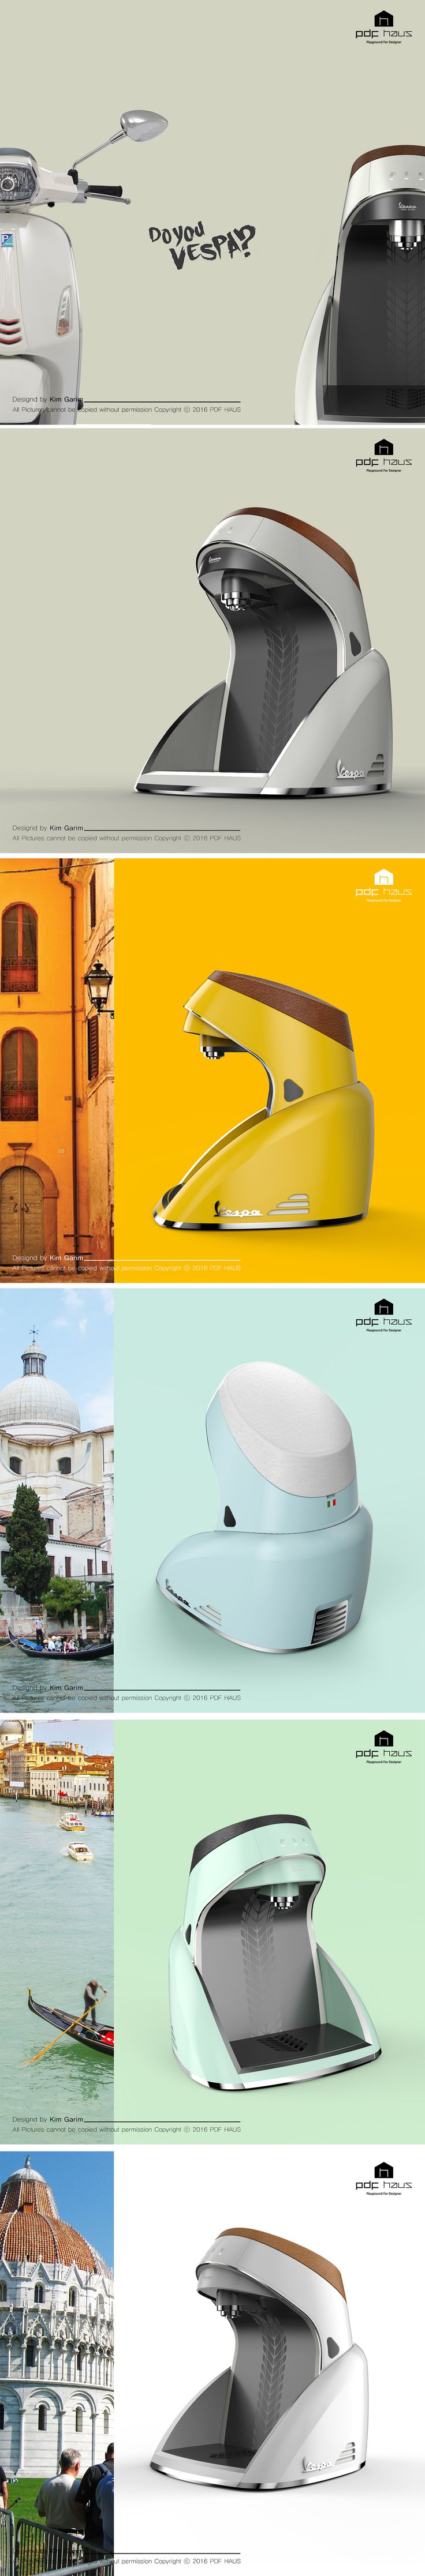 Vespa / water purifier / Product design / Industrial design / 제품디자인 / 산업디자인 / 디자인교육_PDF HAUS Design Academy